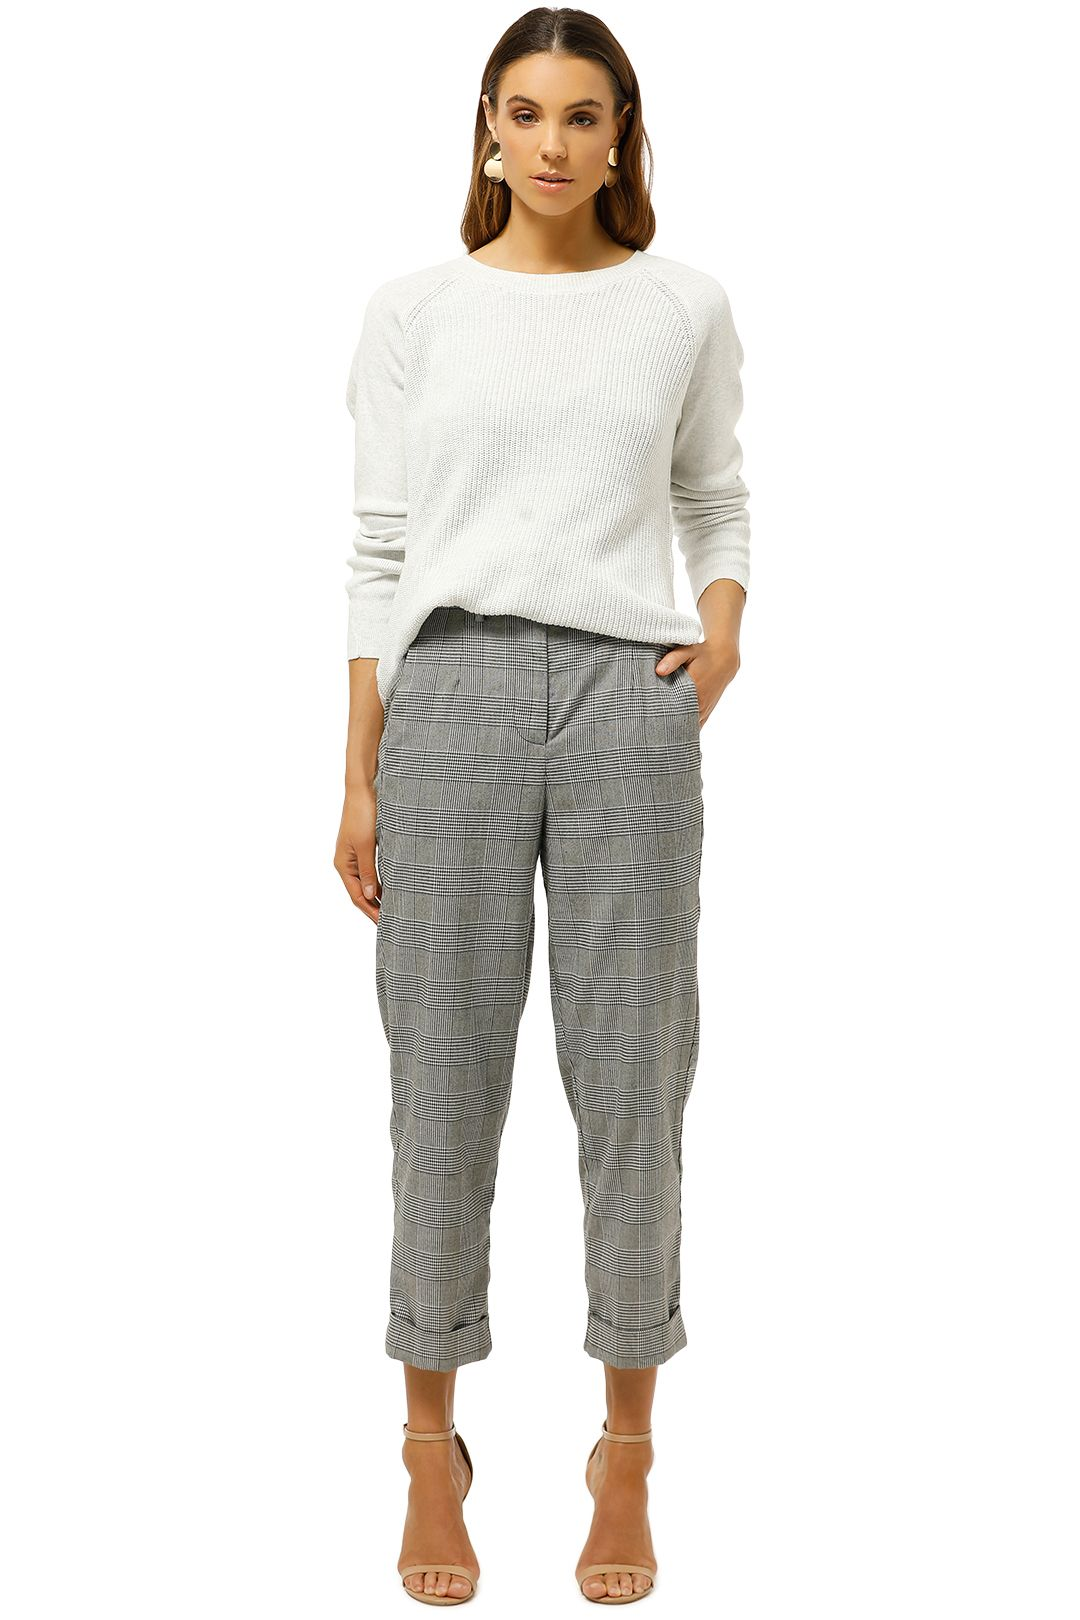 Witchery-Raglan-Sleeve-Knit-Faded Parchment-Front